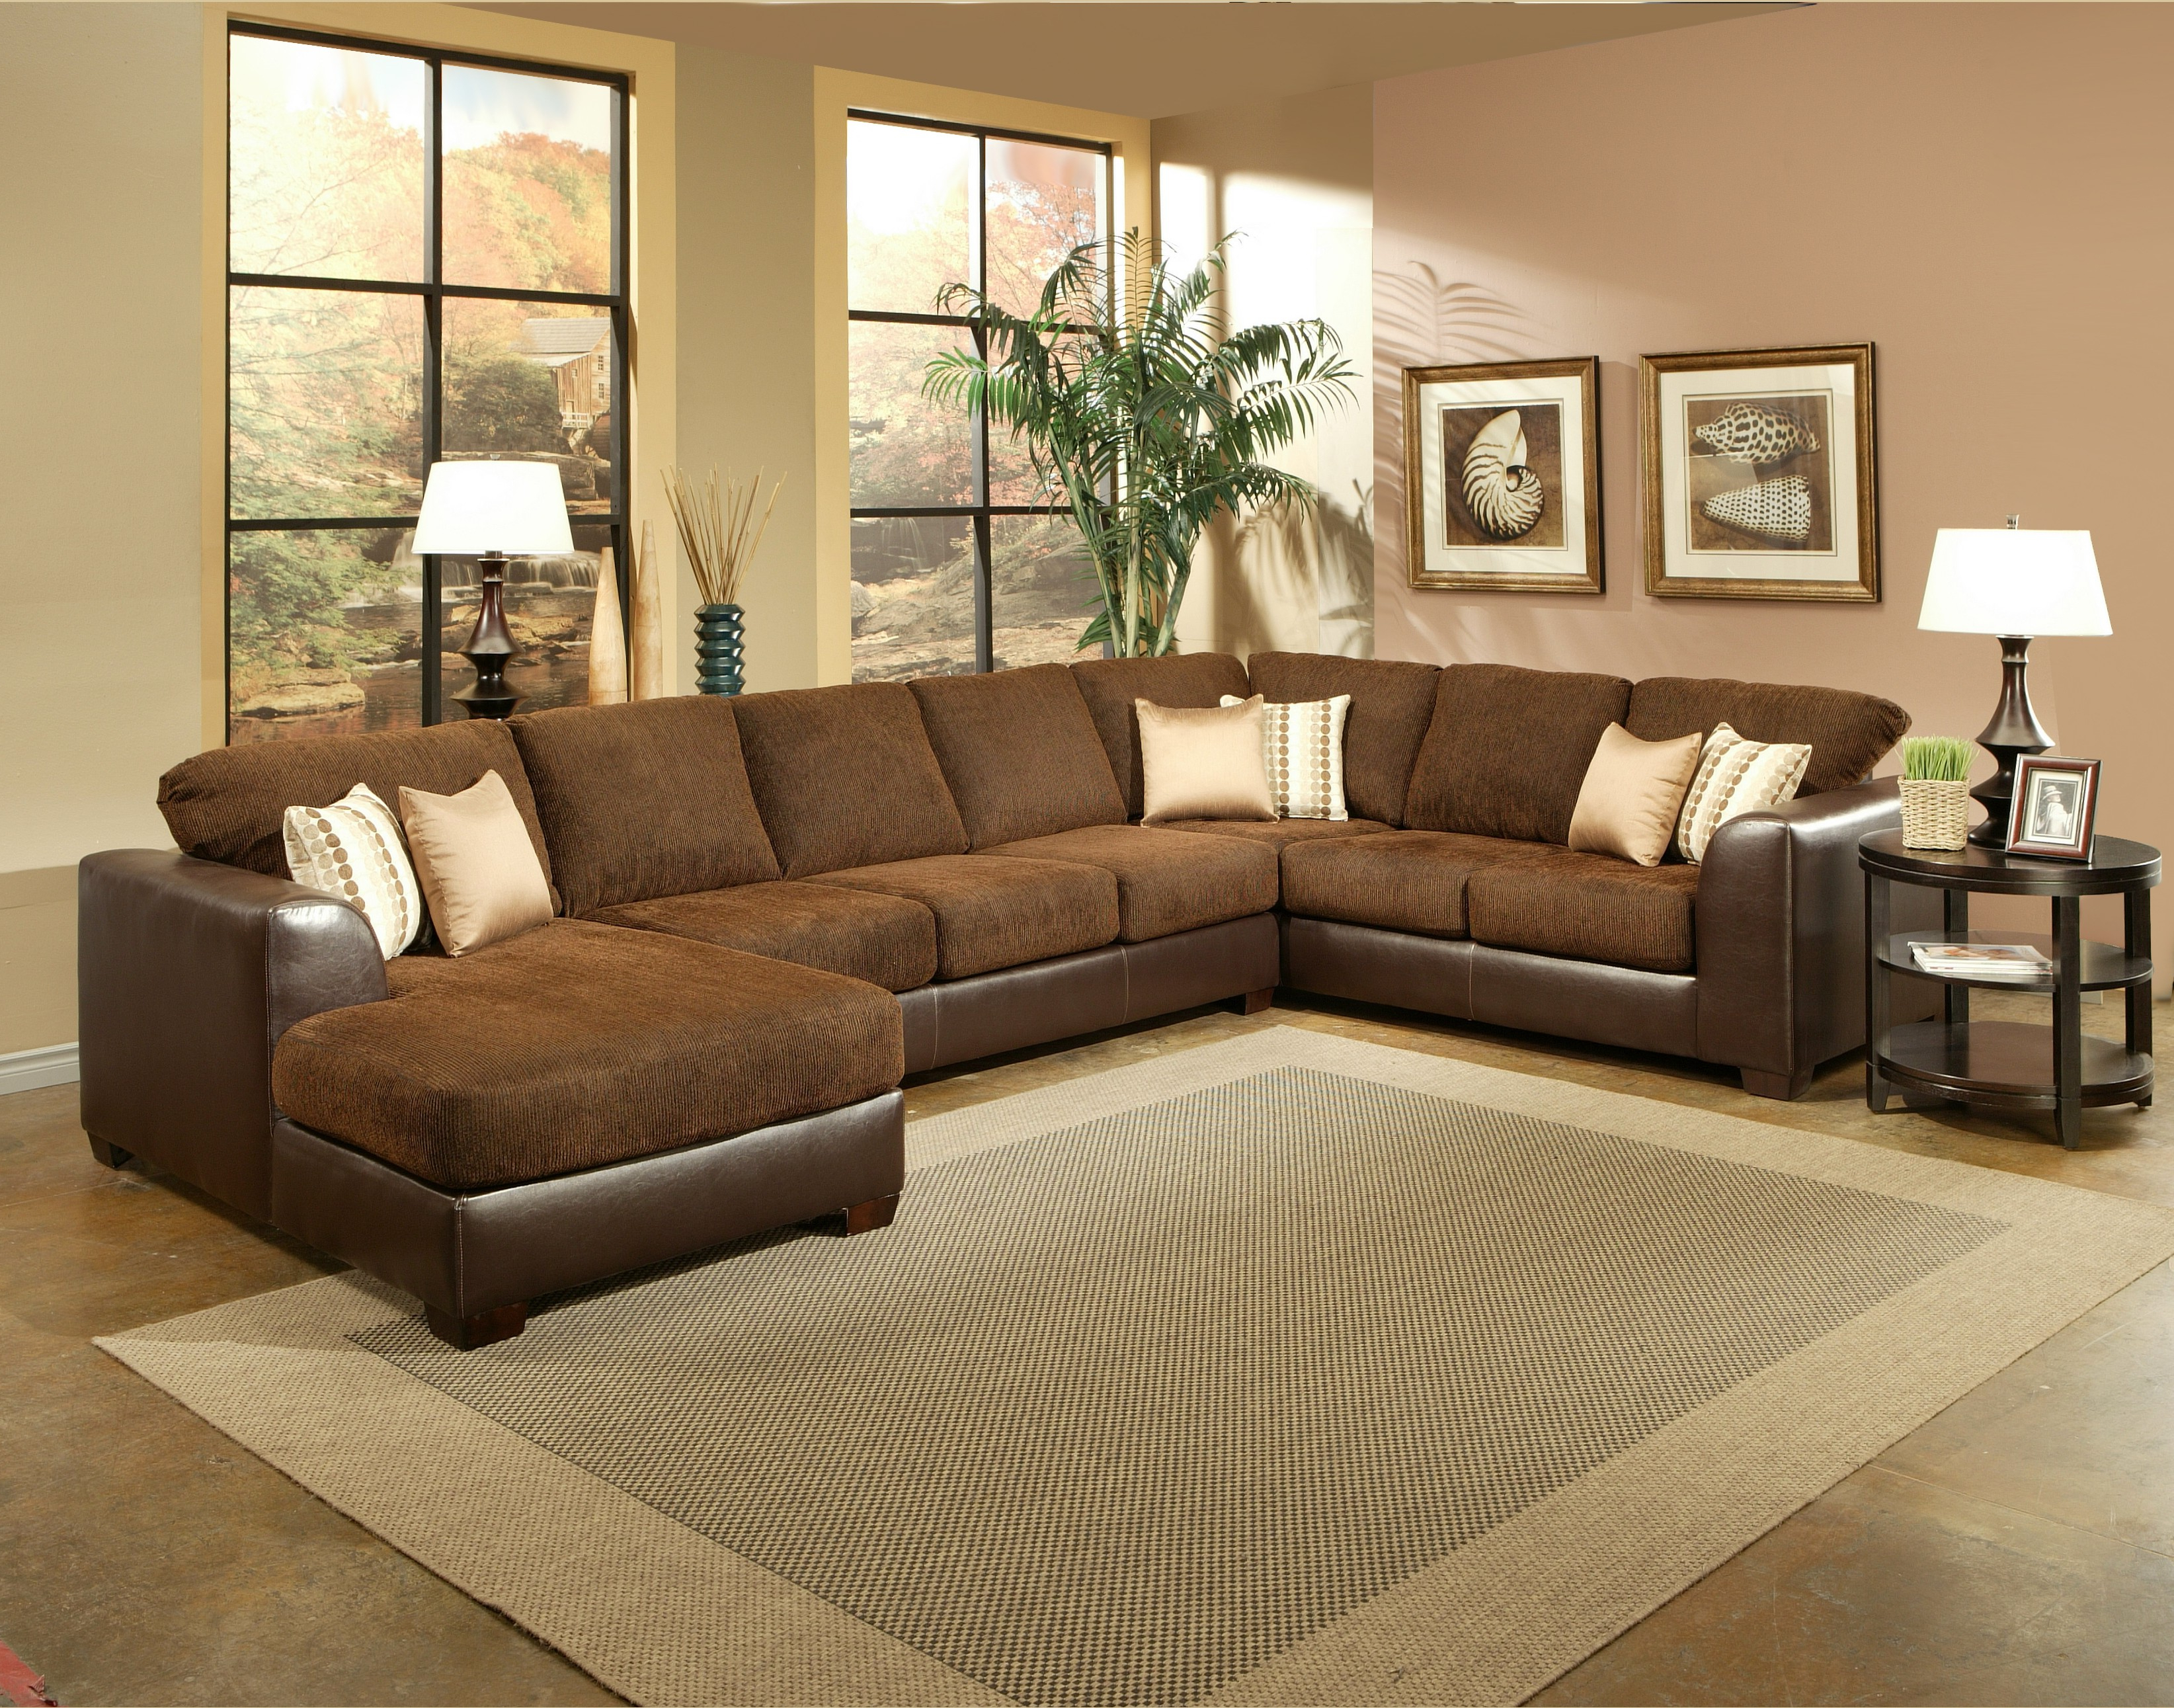 Sierra Down 3 Piece Sectionals With Laf Chaise Intended For Popular Benchley 3 Pc York Sectional (View 16 of 20)